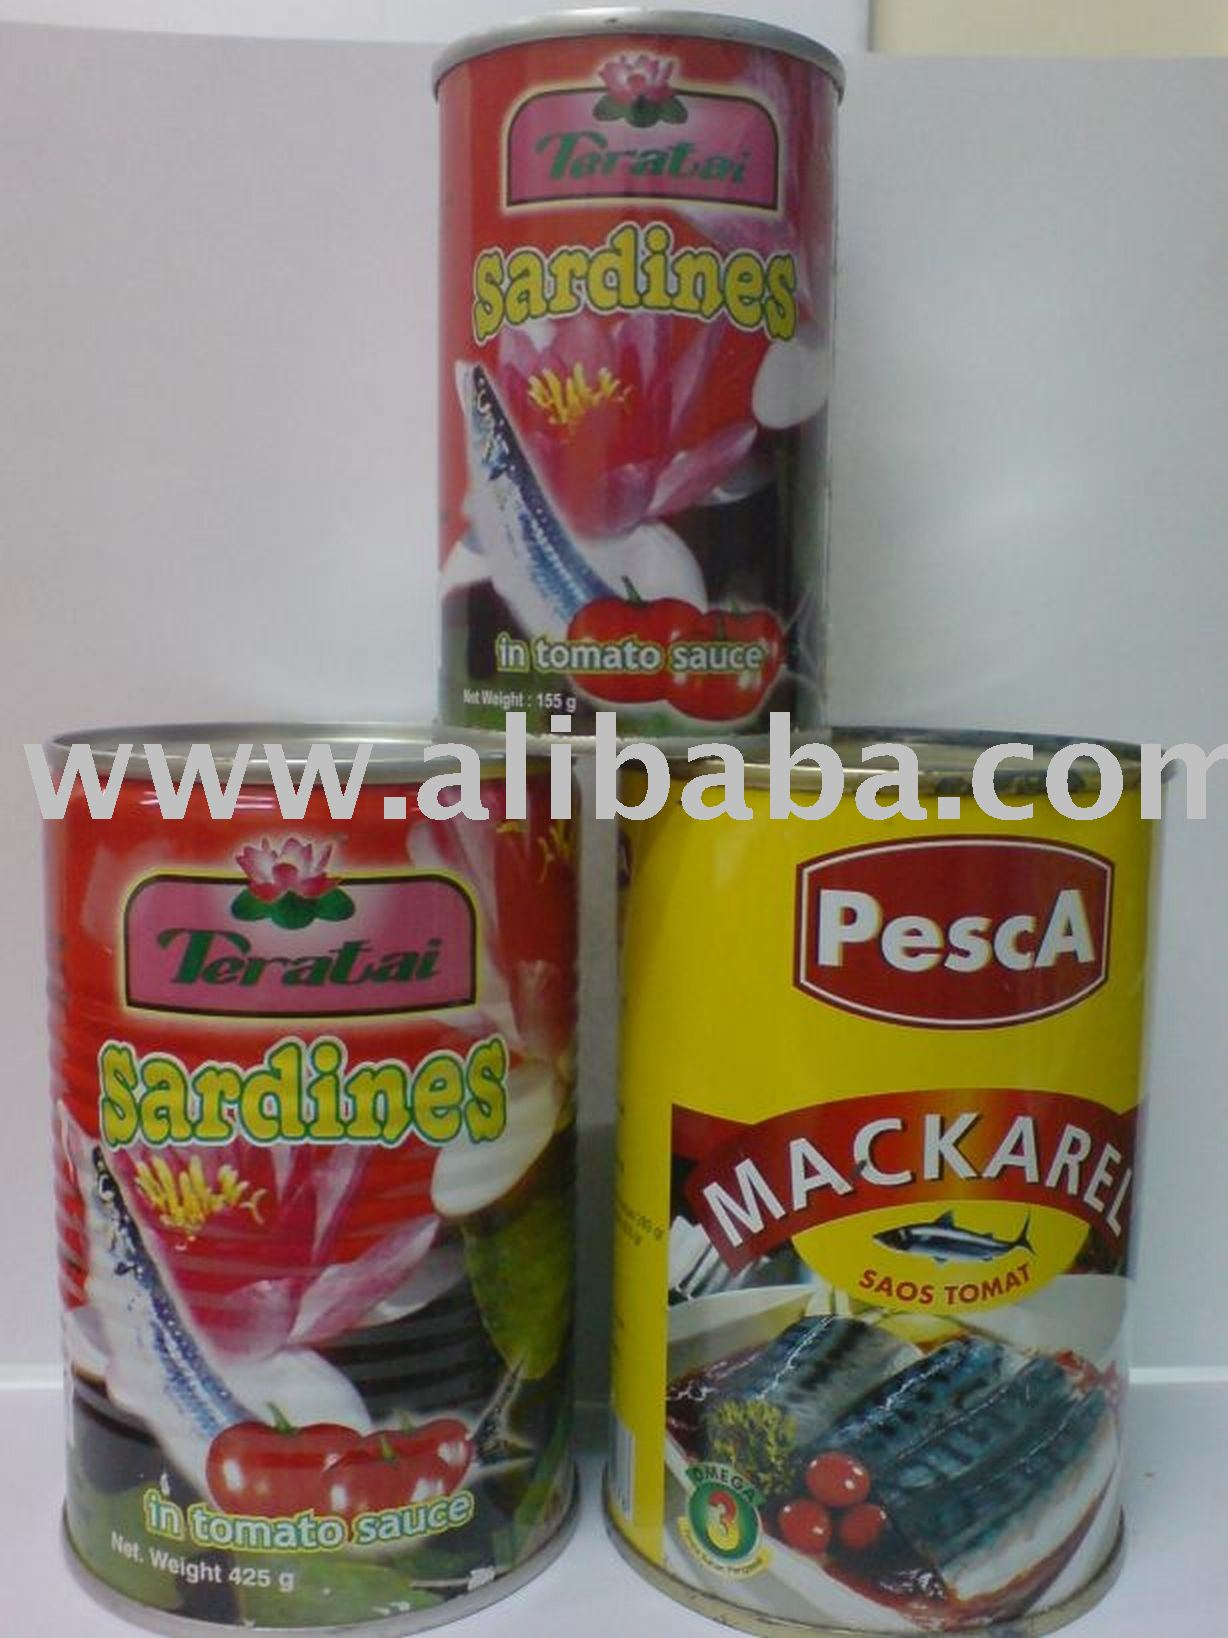 Canned Mackerel/Sardines in Tomato Sauce